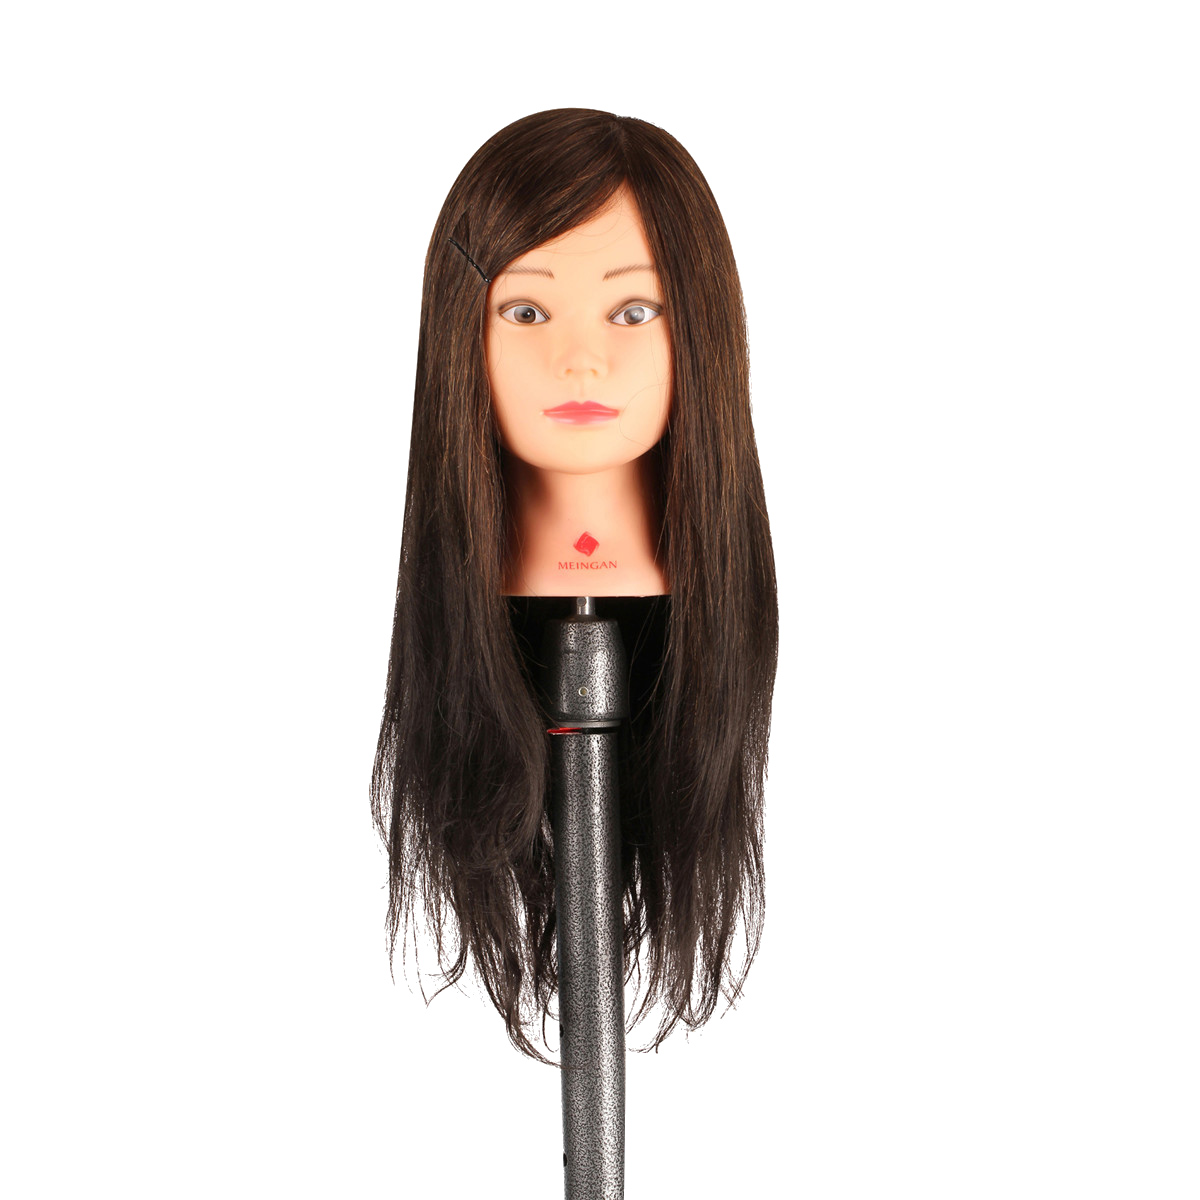 Professional 30% Natural human hair 20 long Mannequin Hairdressing Styling Training Head Mannequin Head with clamp stand<br>